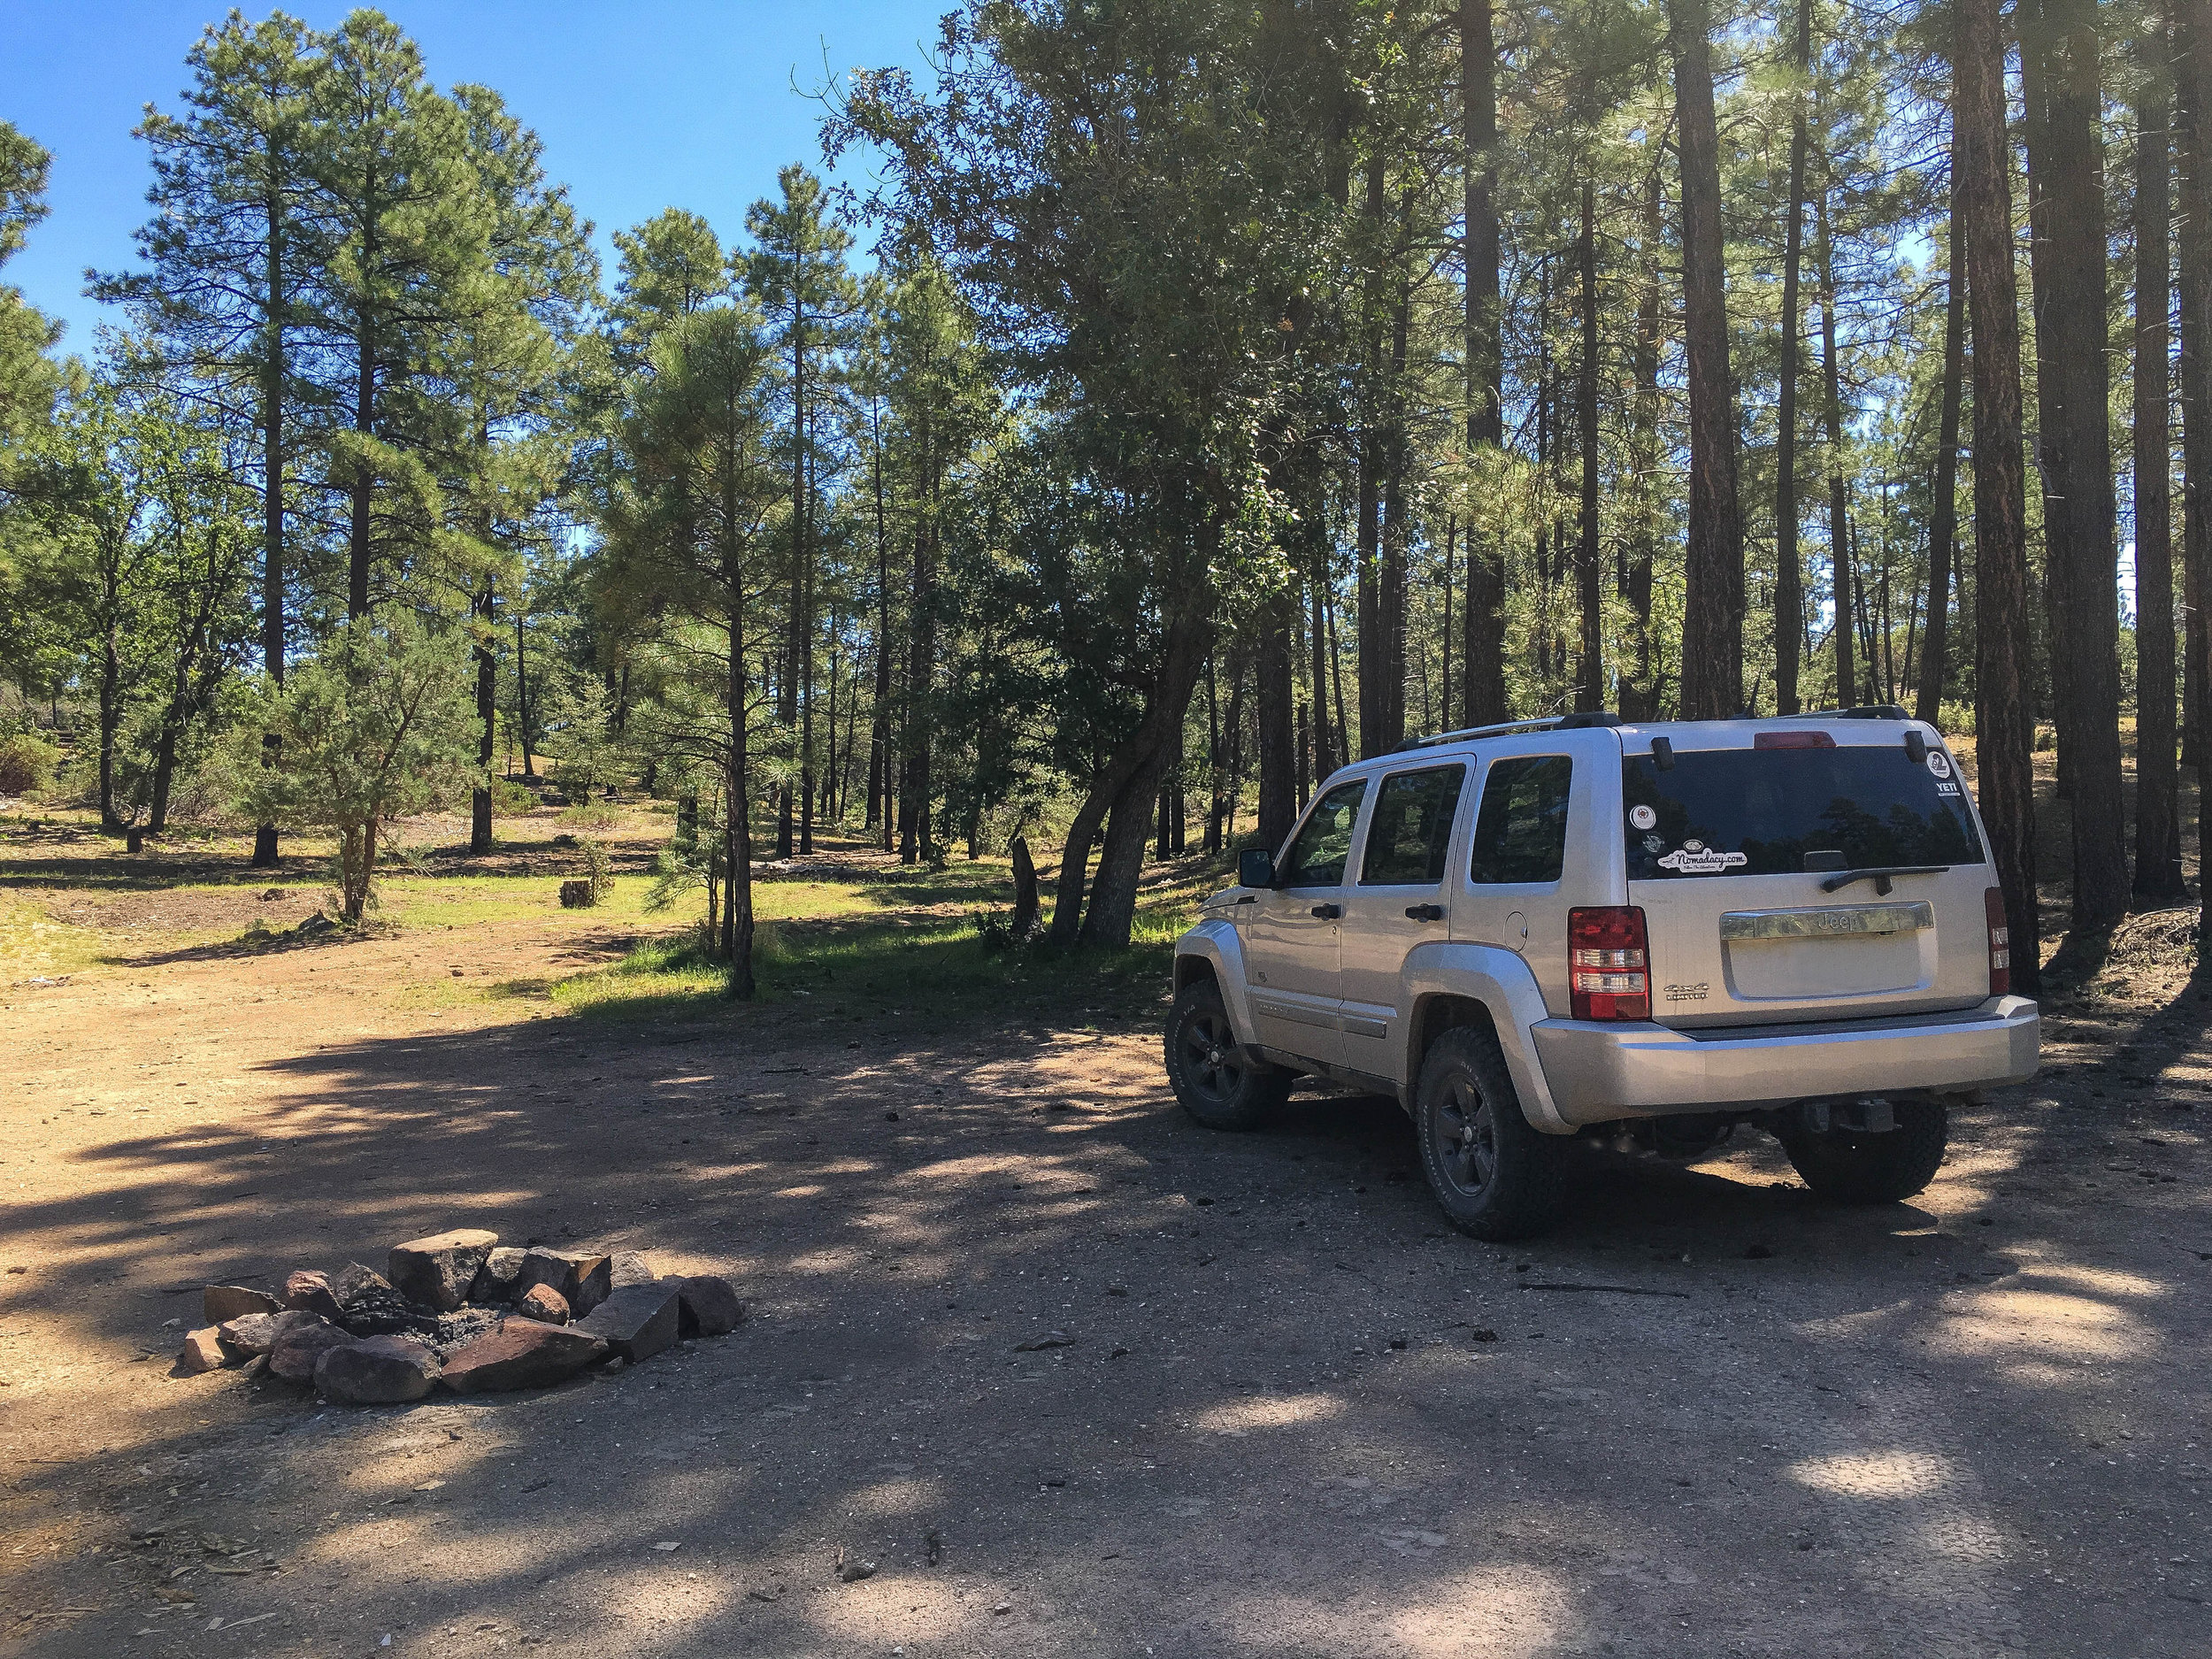 In the pines at Camp Wood.